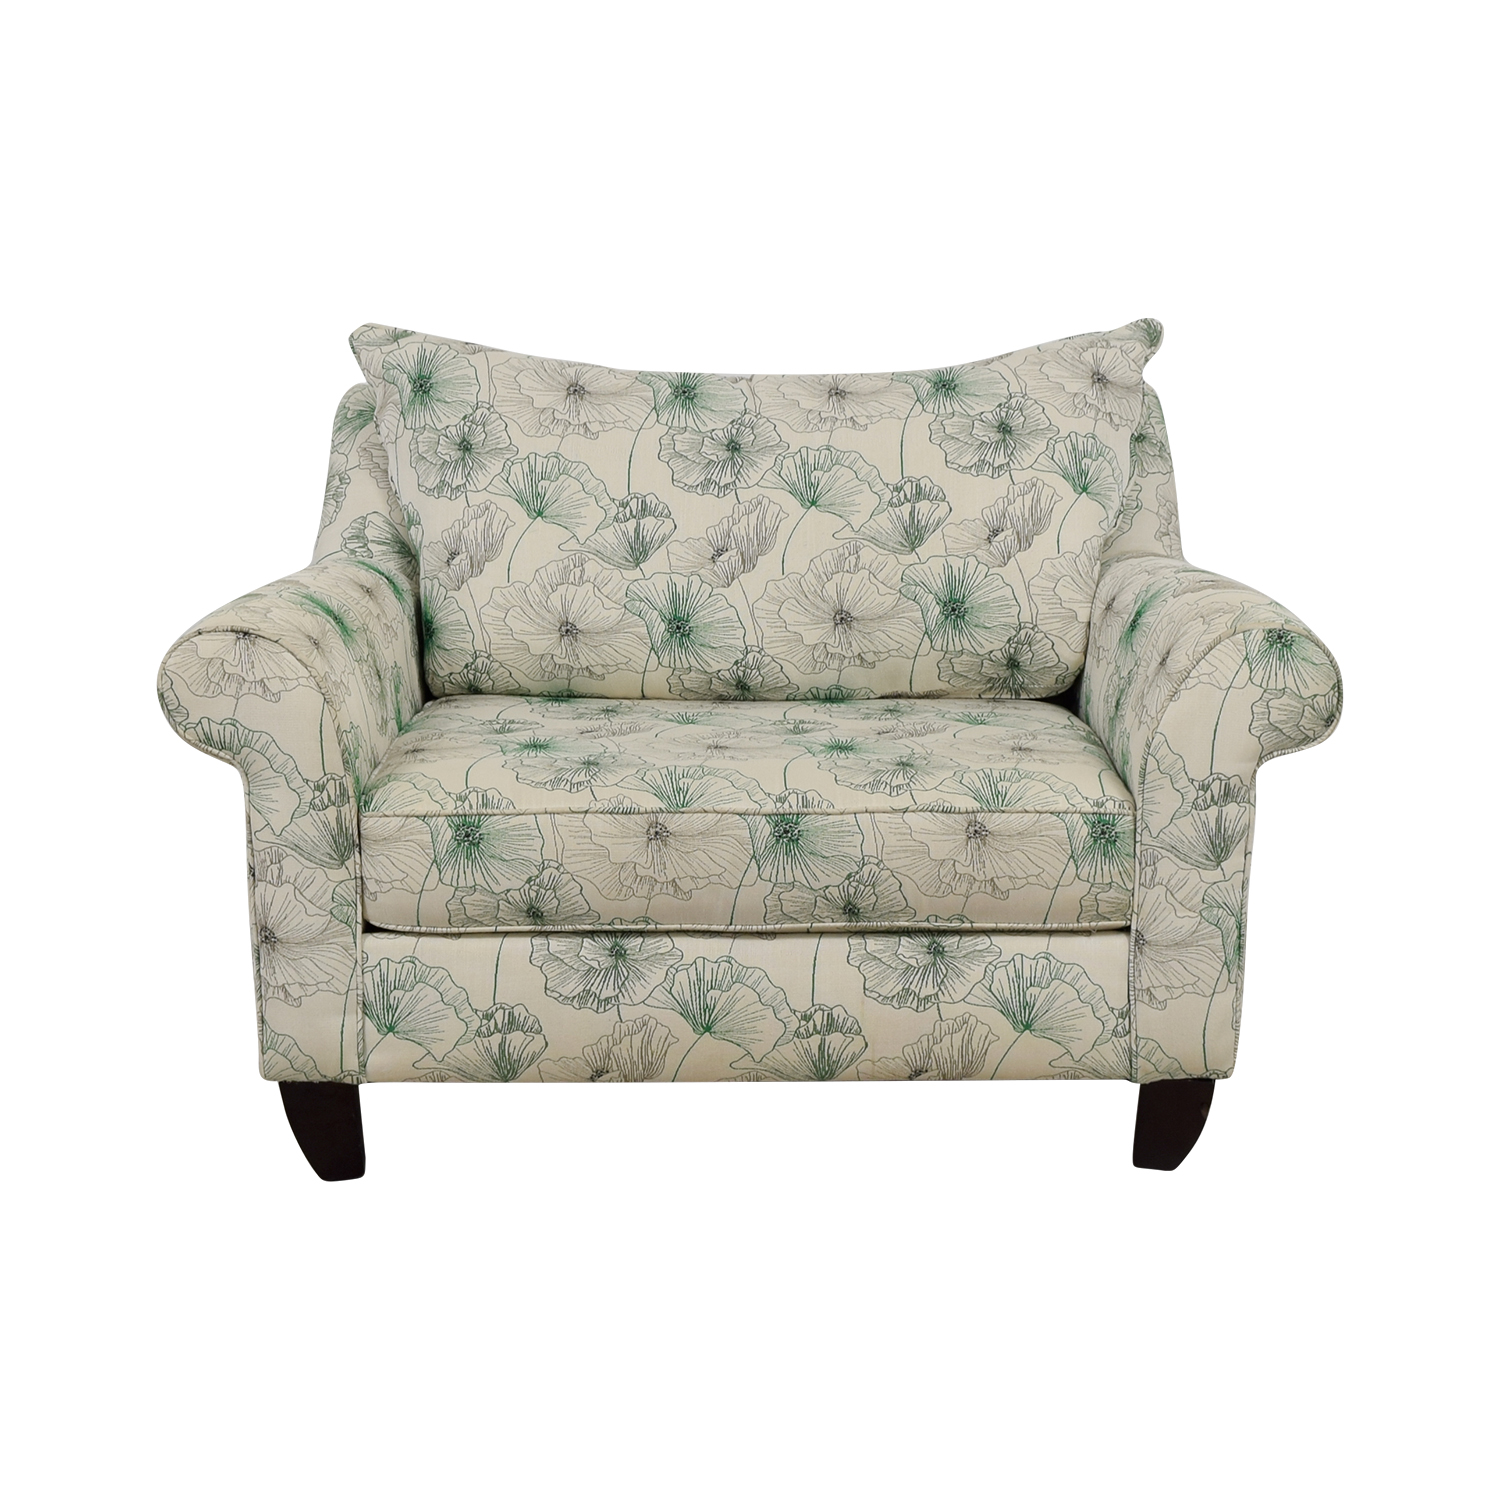 Awe Inspiring 74 Off American Signature American Signature White And Green Floral Loveseat Sofas Machost Co Dining Chair Design Ideas Machostcouk